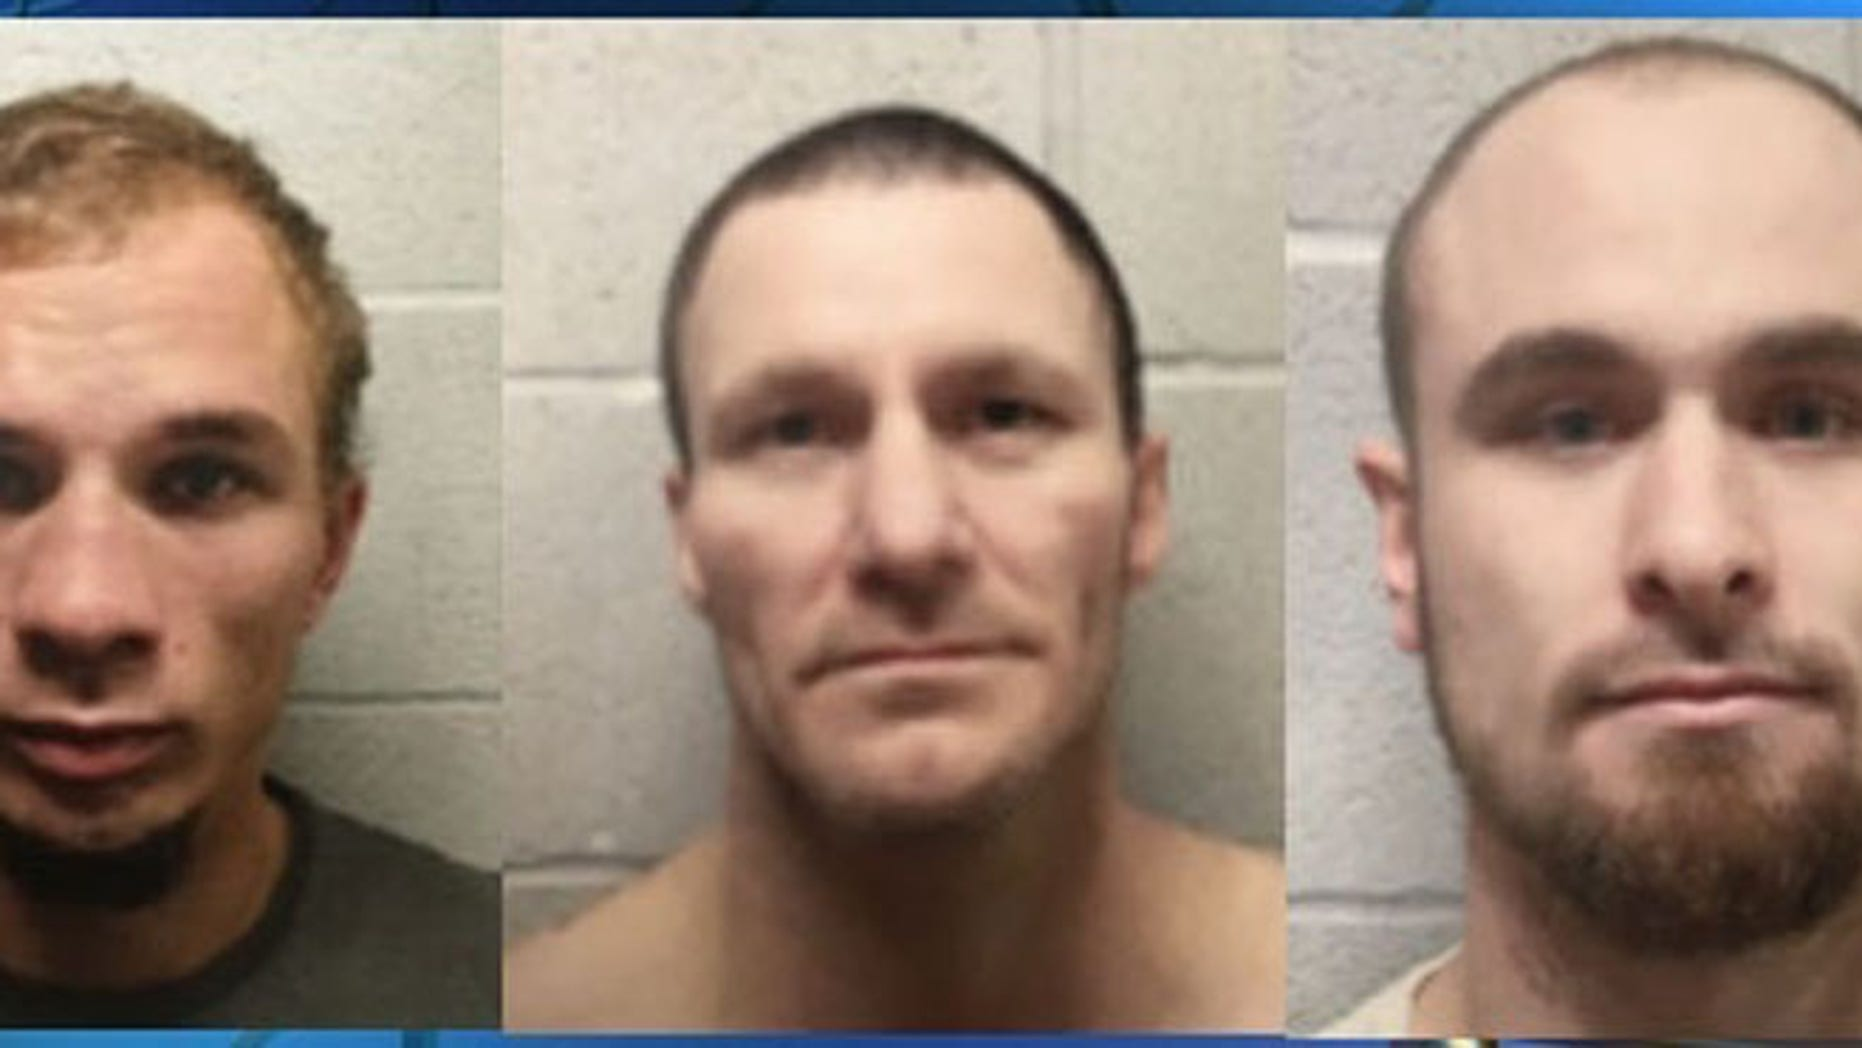 Brian Allen Moody, 23, Sonny Baker, 41, and Mark Dwayne Robbins, 23, escaped from the Lincoln County jail in Oklahoma Thursday.